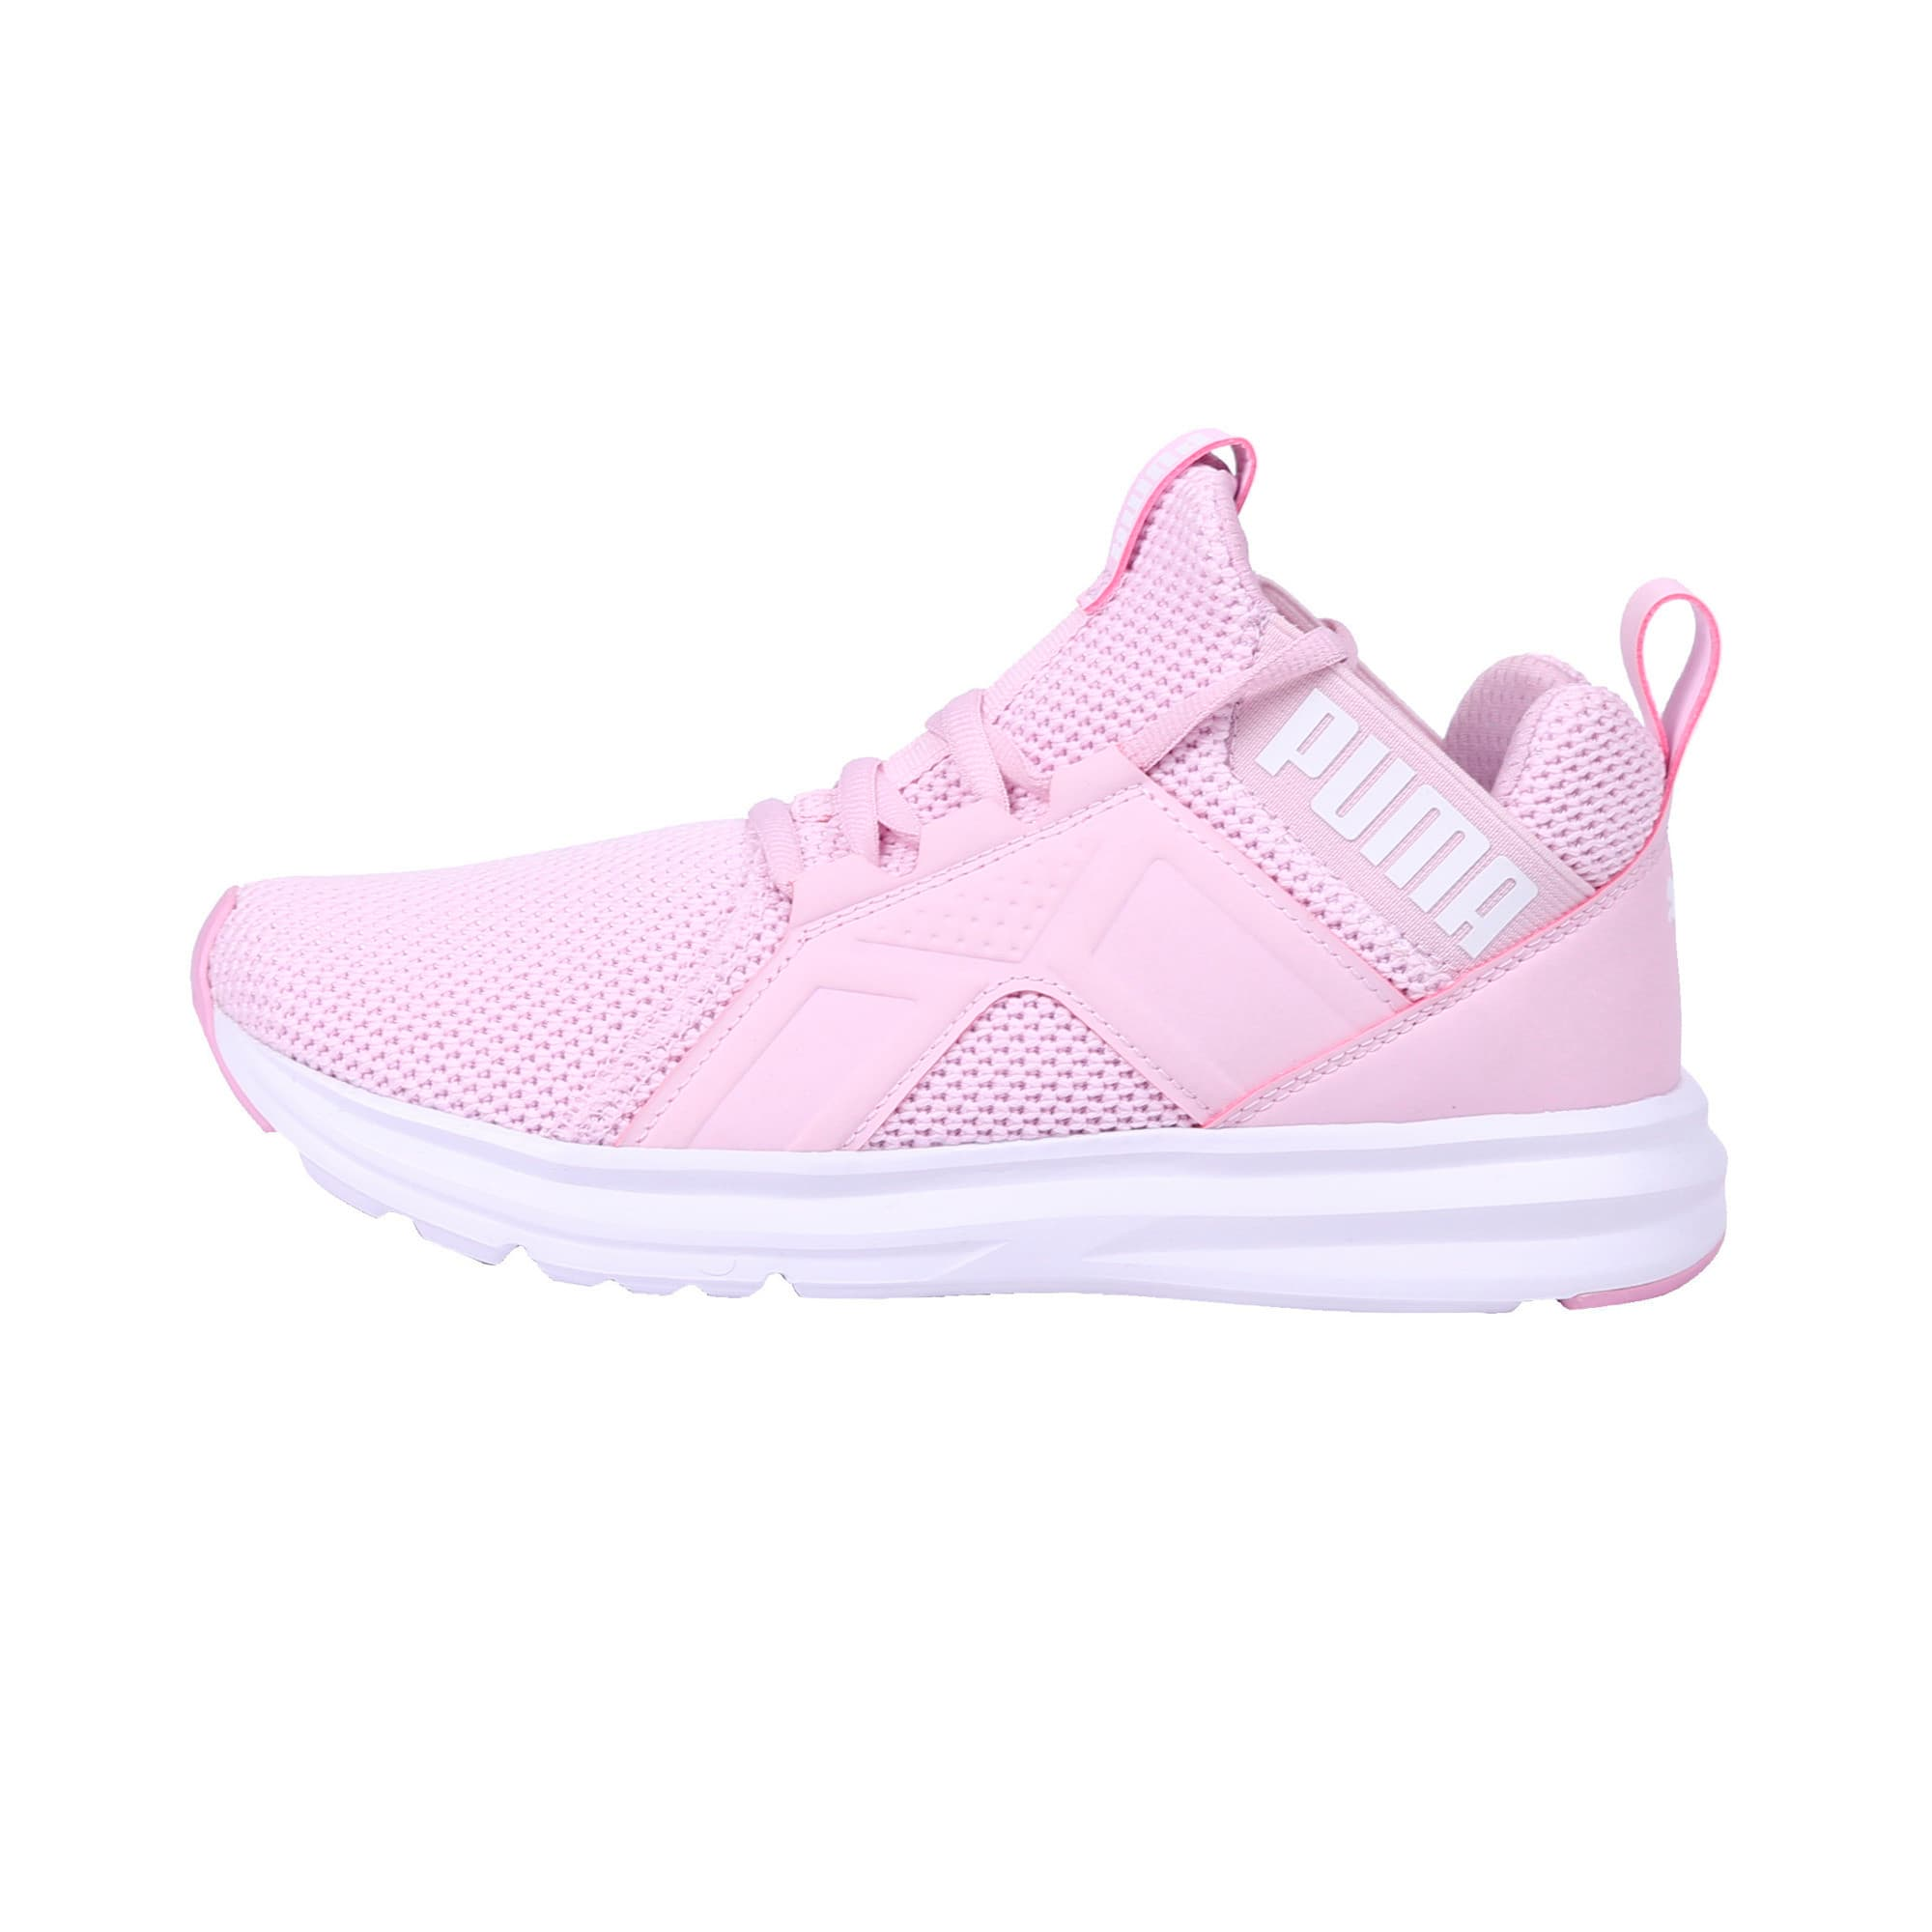 Thumbnail 1 of Enzo Weave Women's Trainers, Winsome Orchid-Puma White, medium-IND